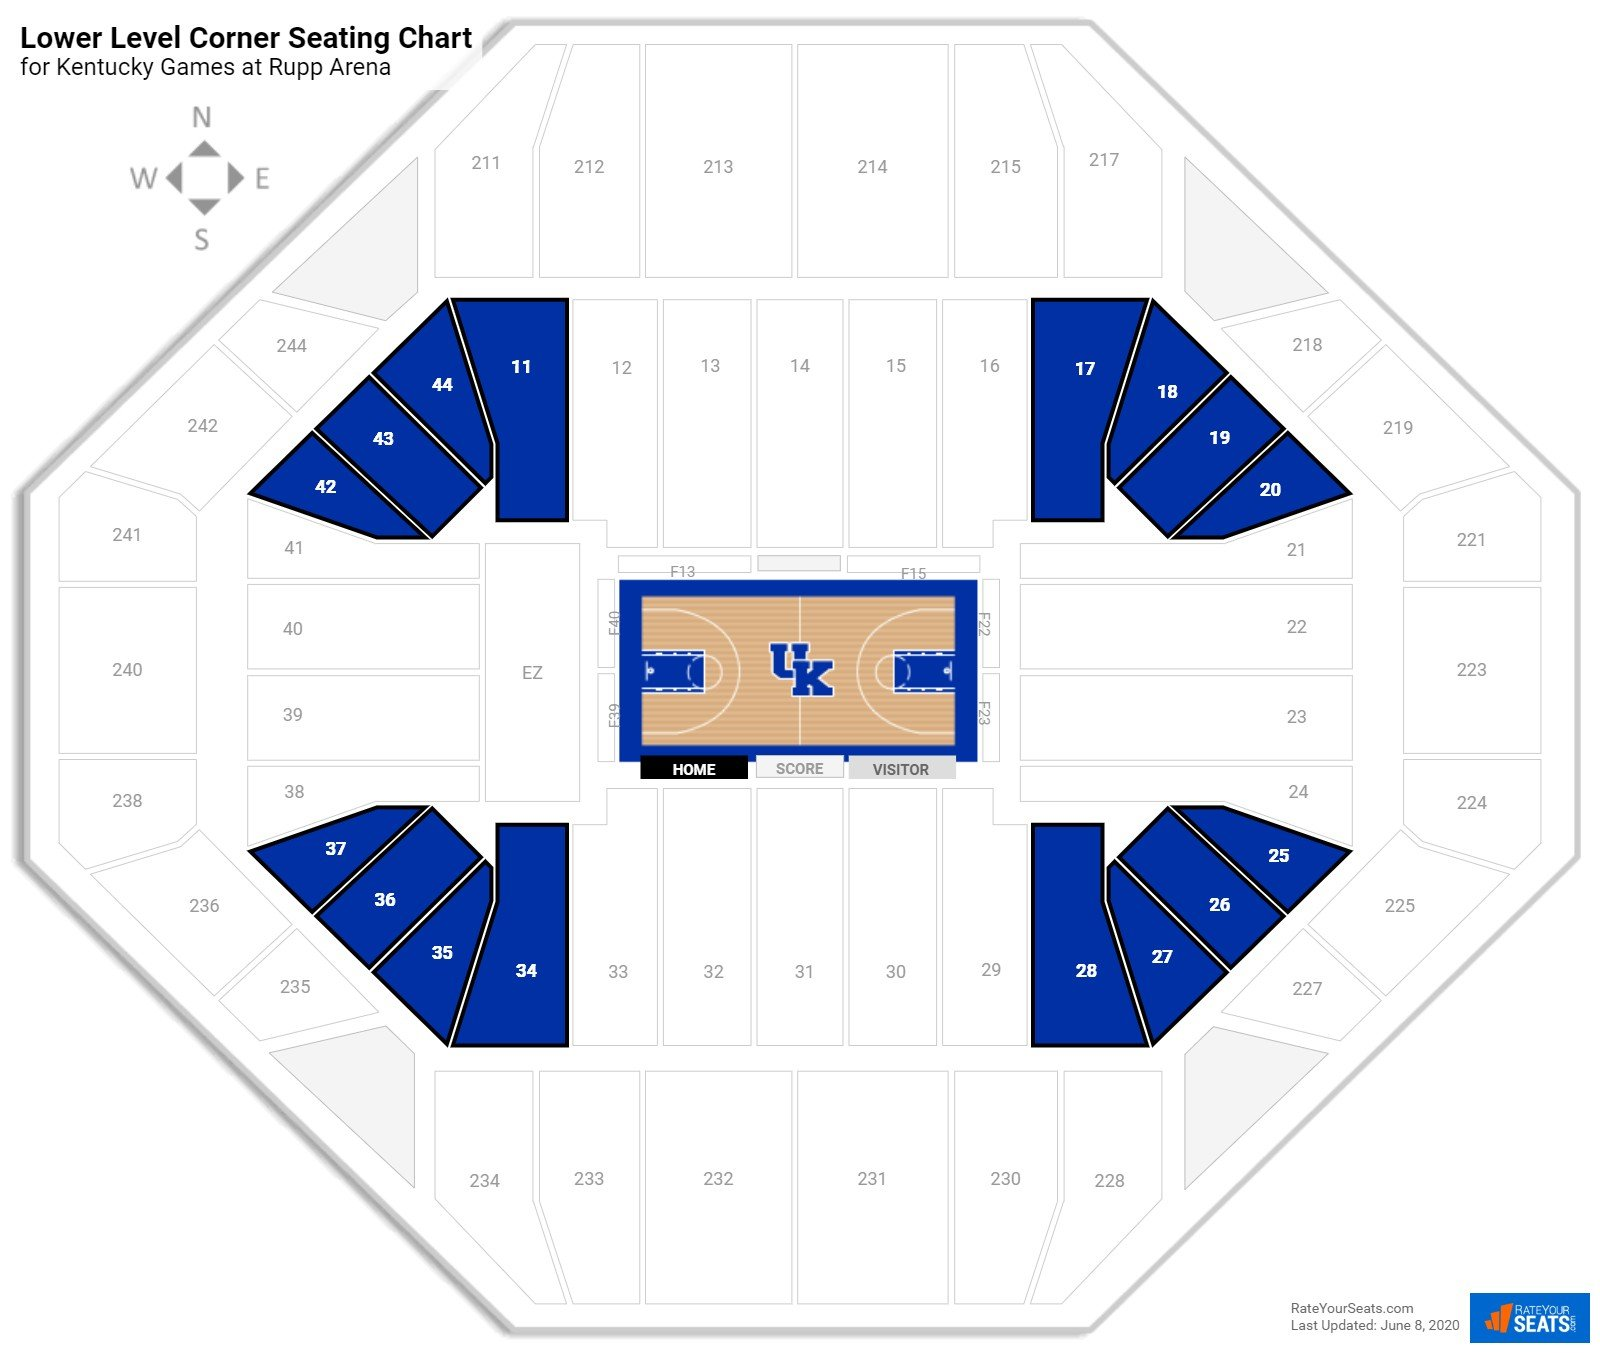 Rupp Arena Lower Level Corner Seating Chart